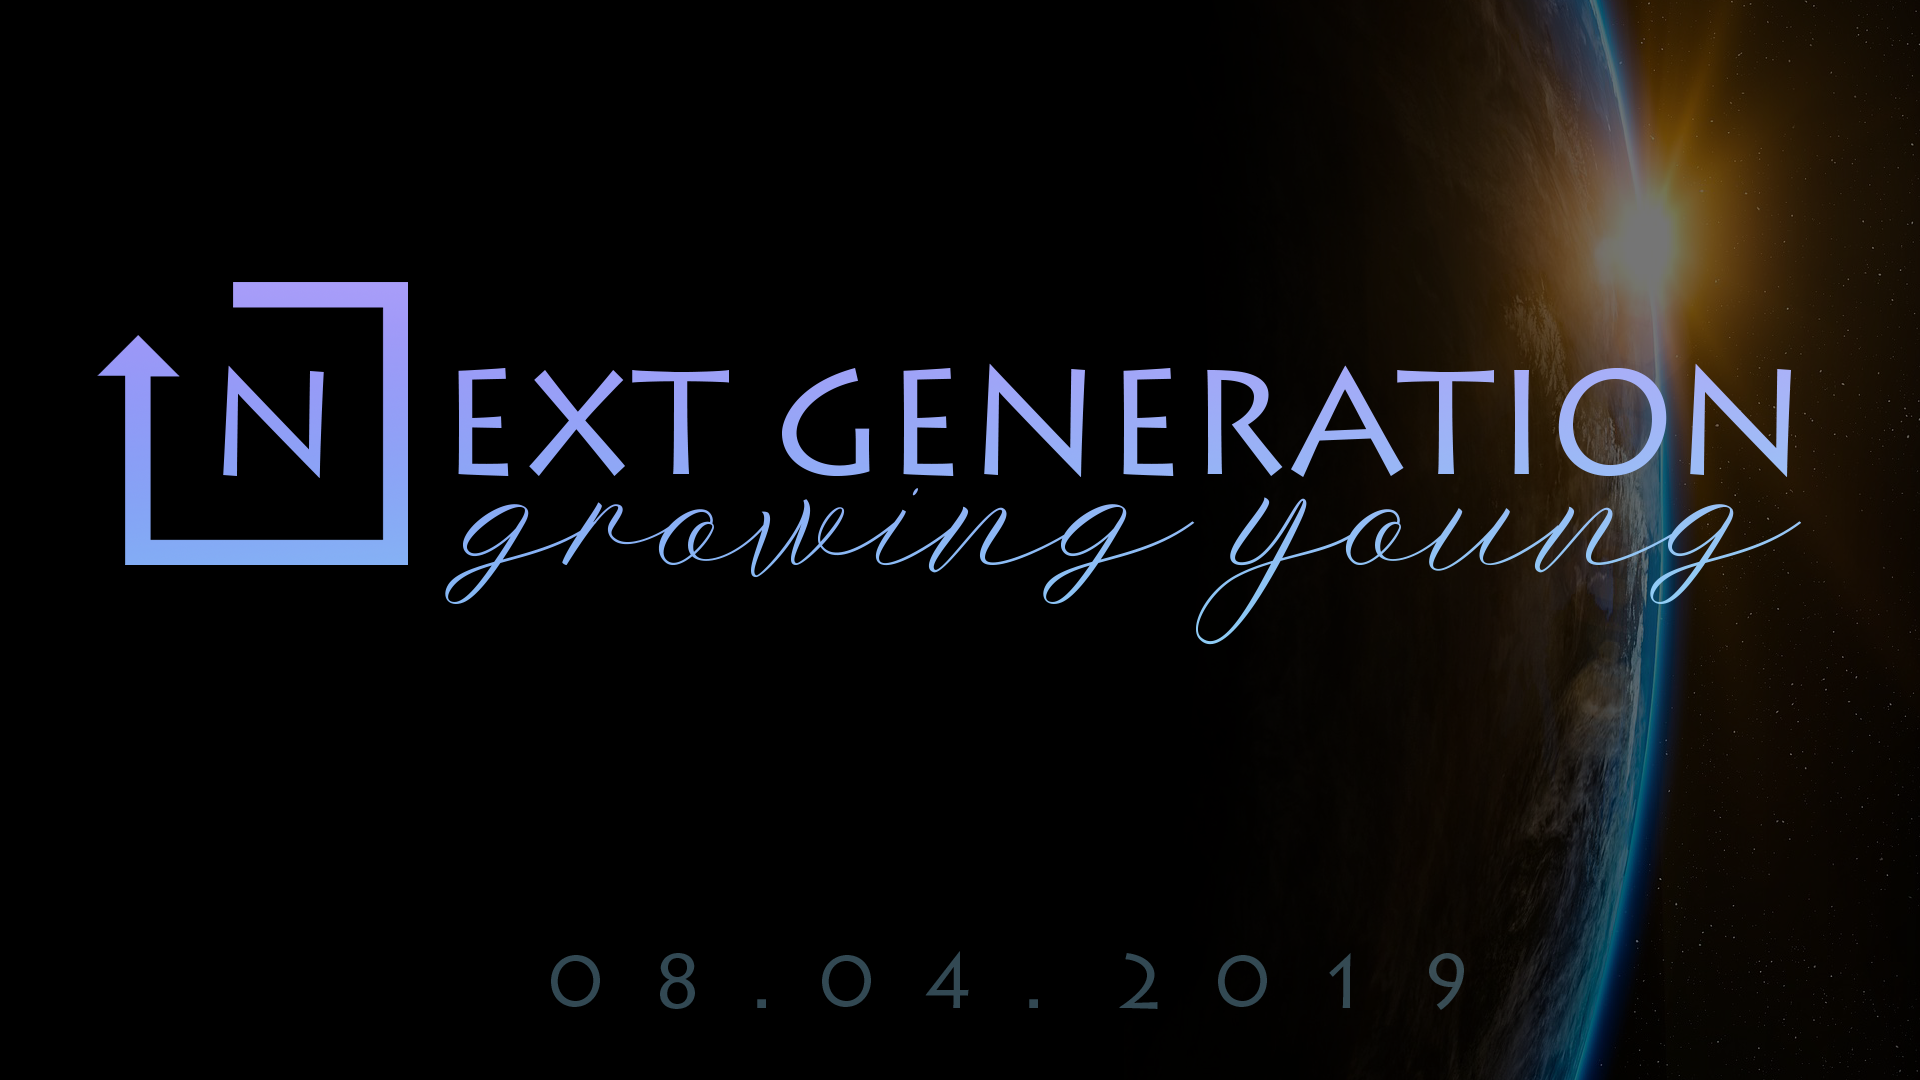 Next Generation Growing Young